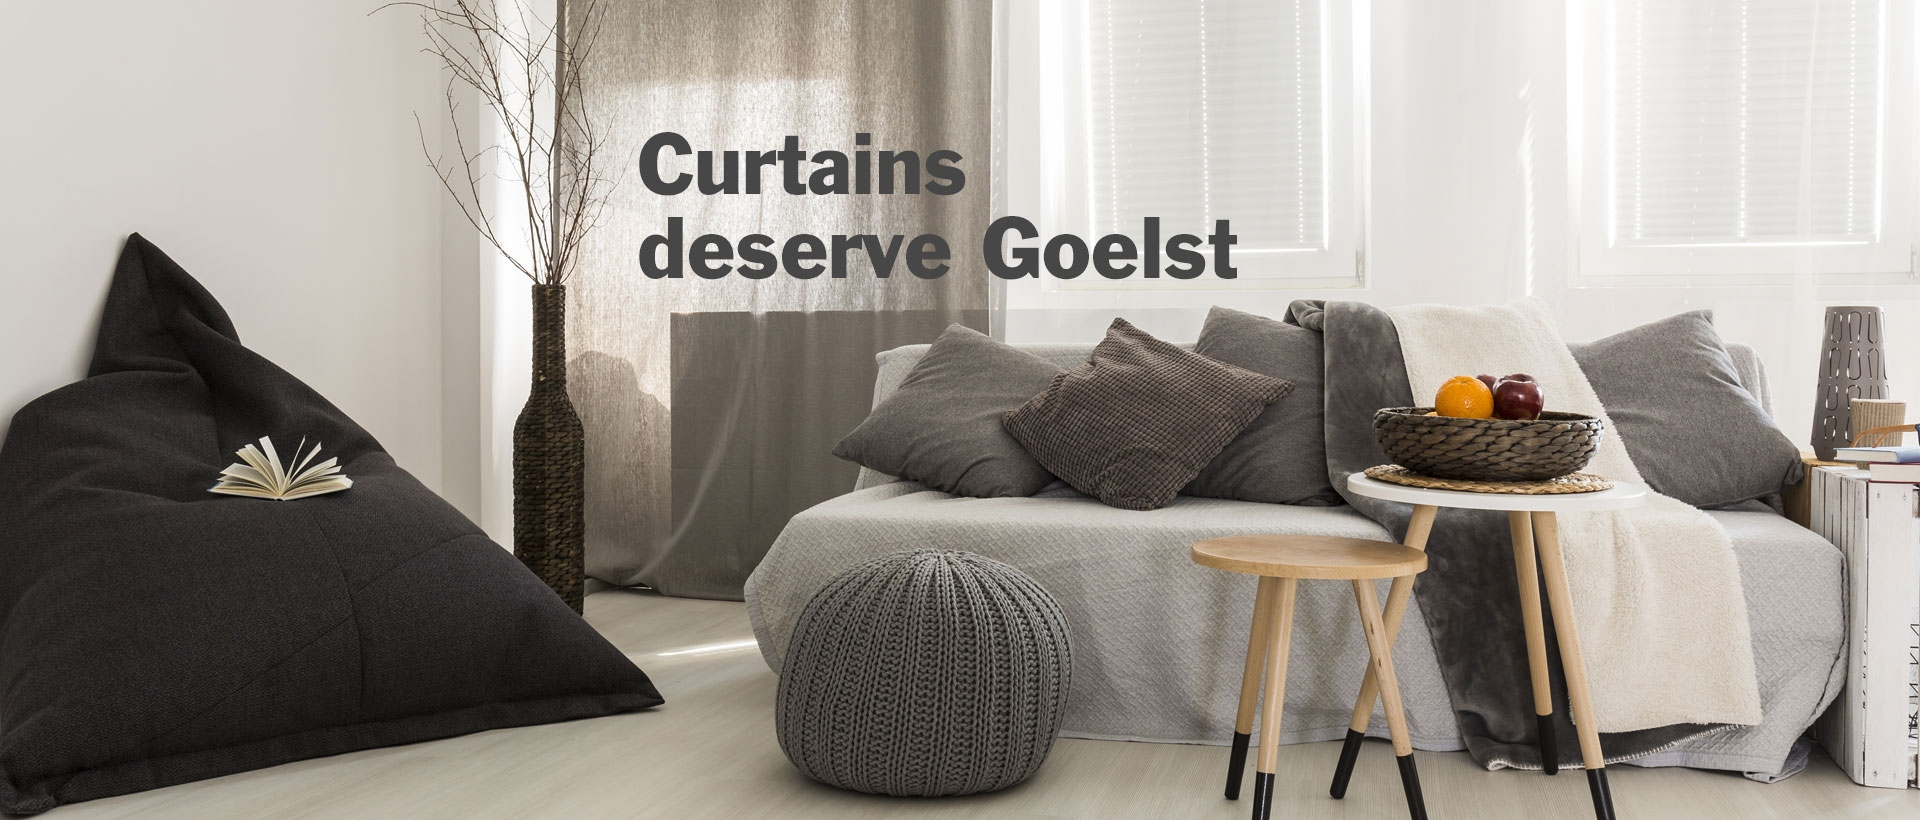 Curtains deserve Goelst